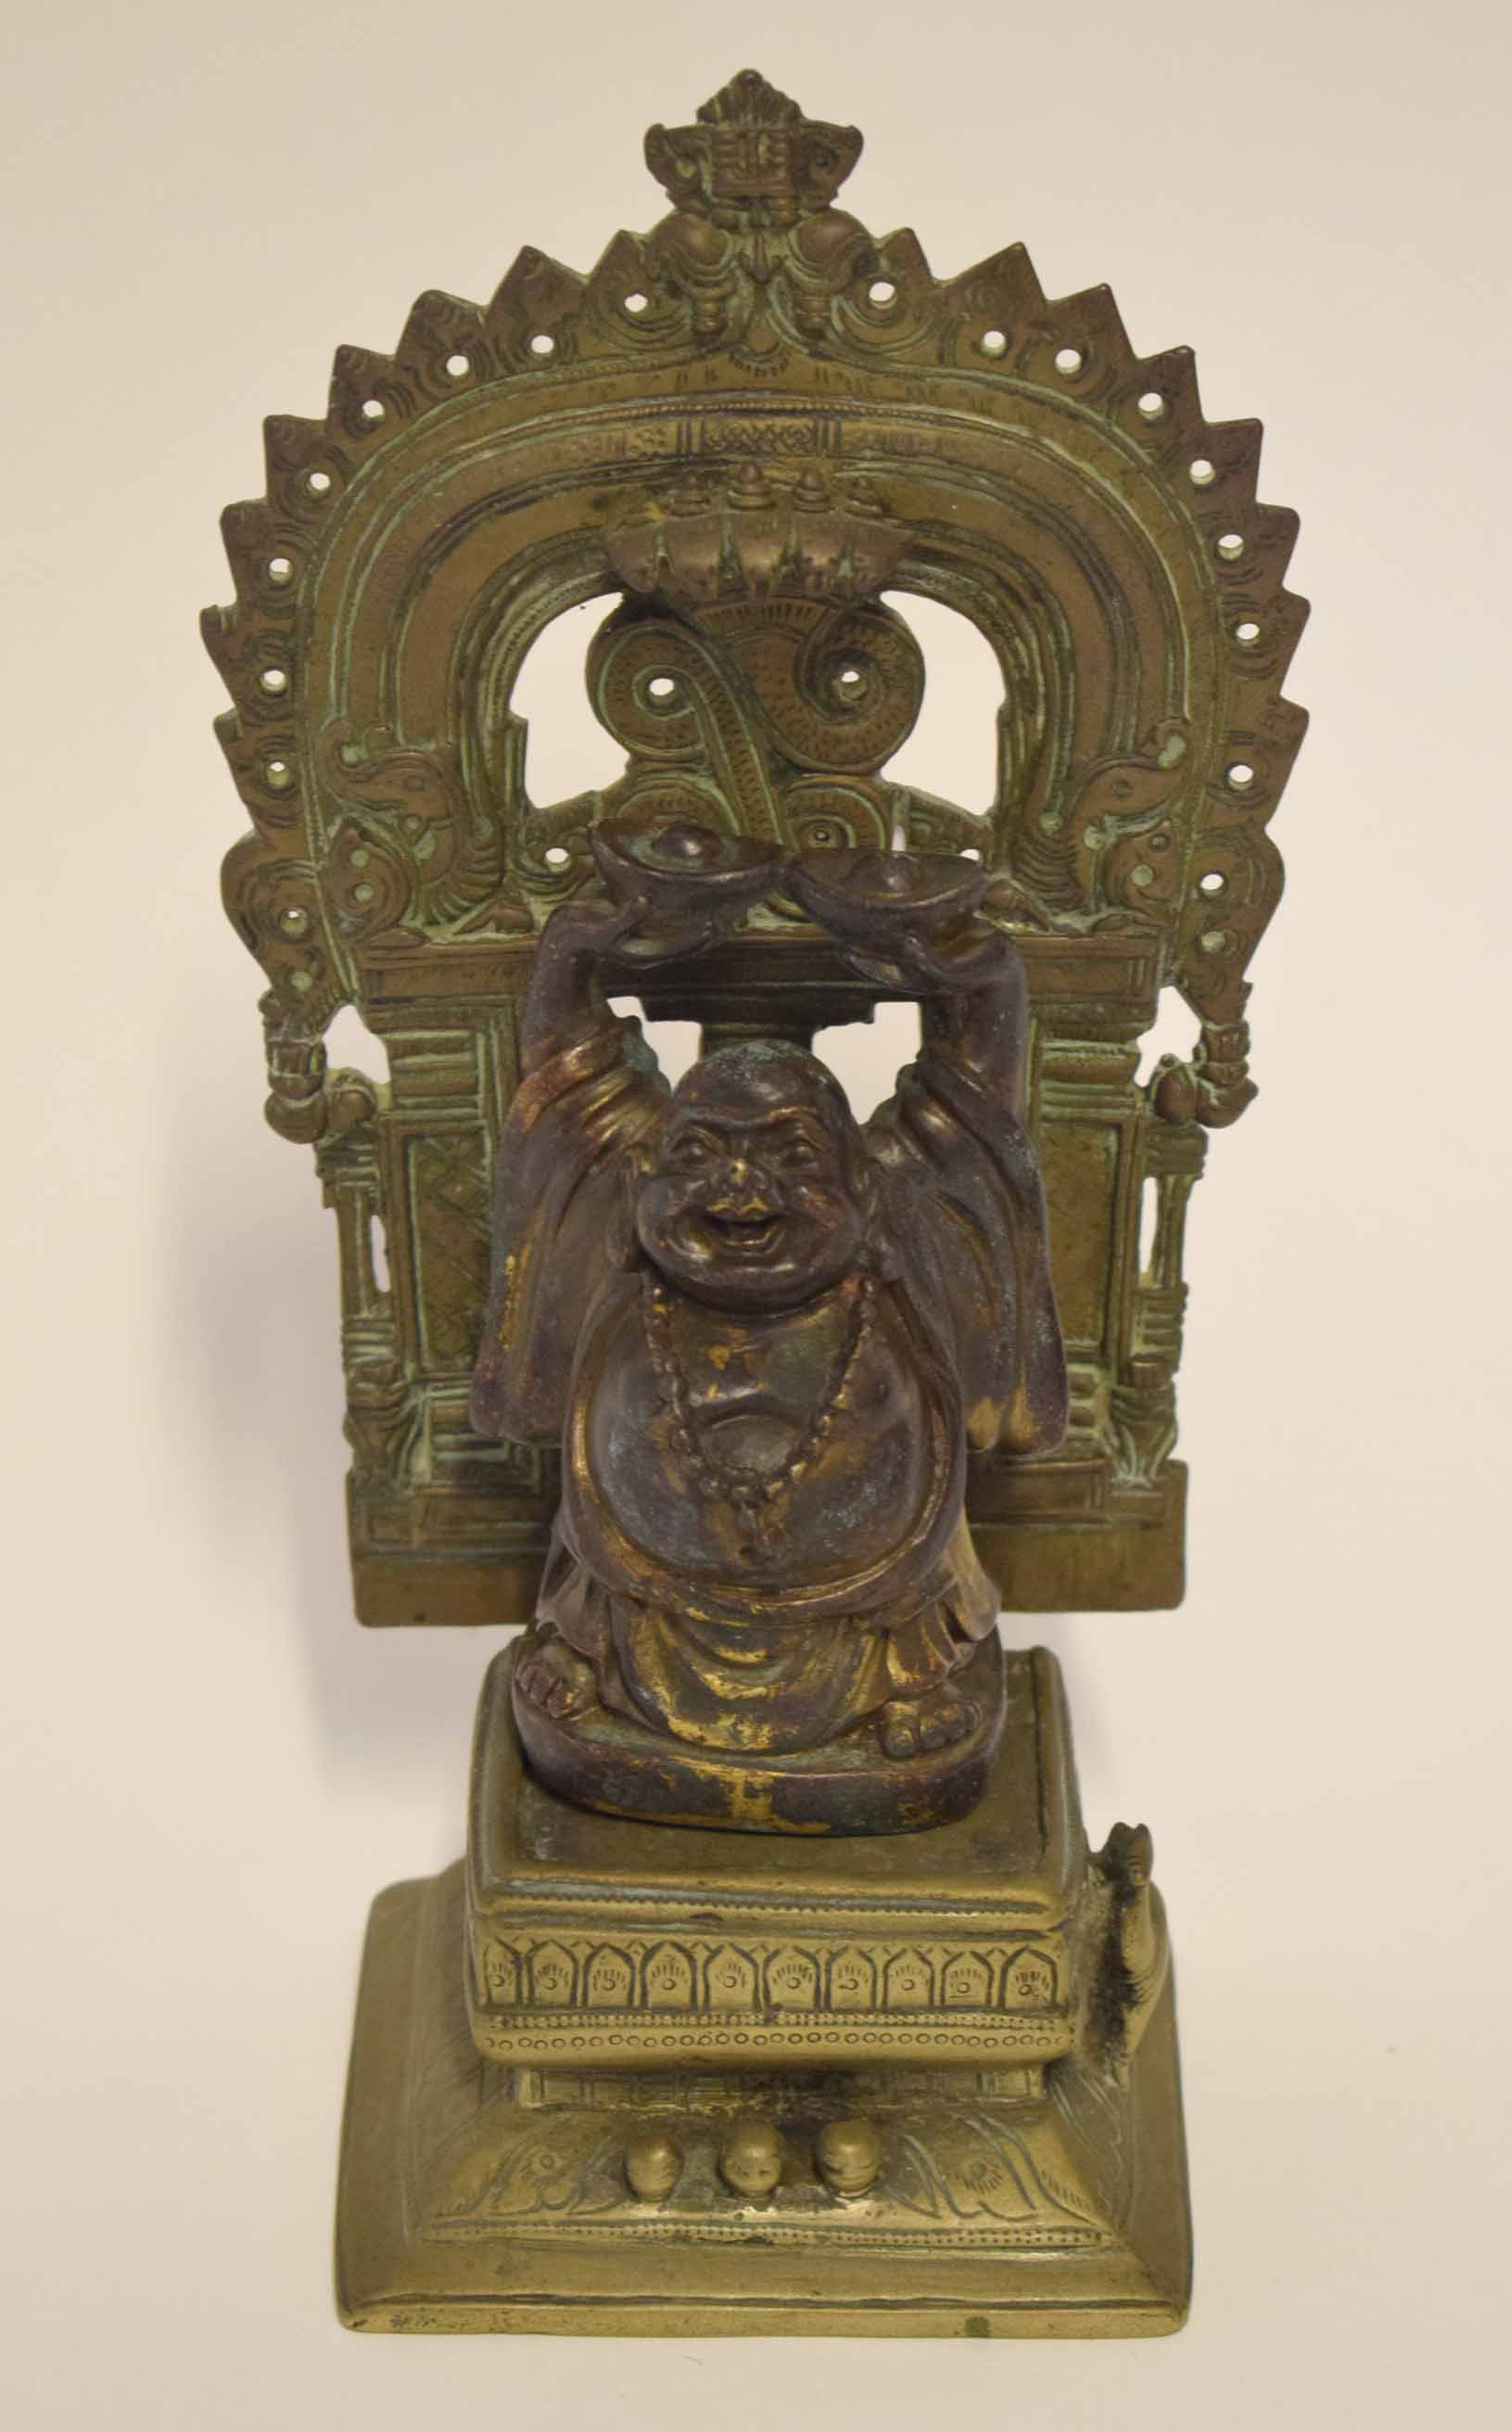 Lot 25 - Bronzed metal figure of Buddha on a separate base, Middle Eastern in style, with a detachable